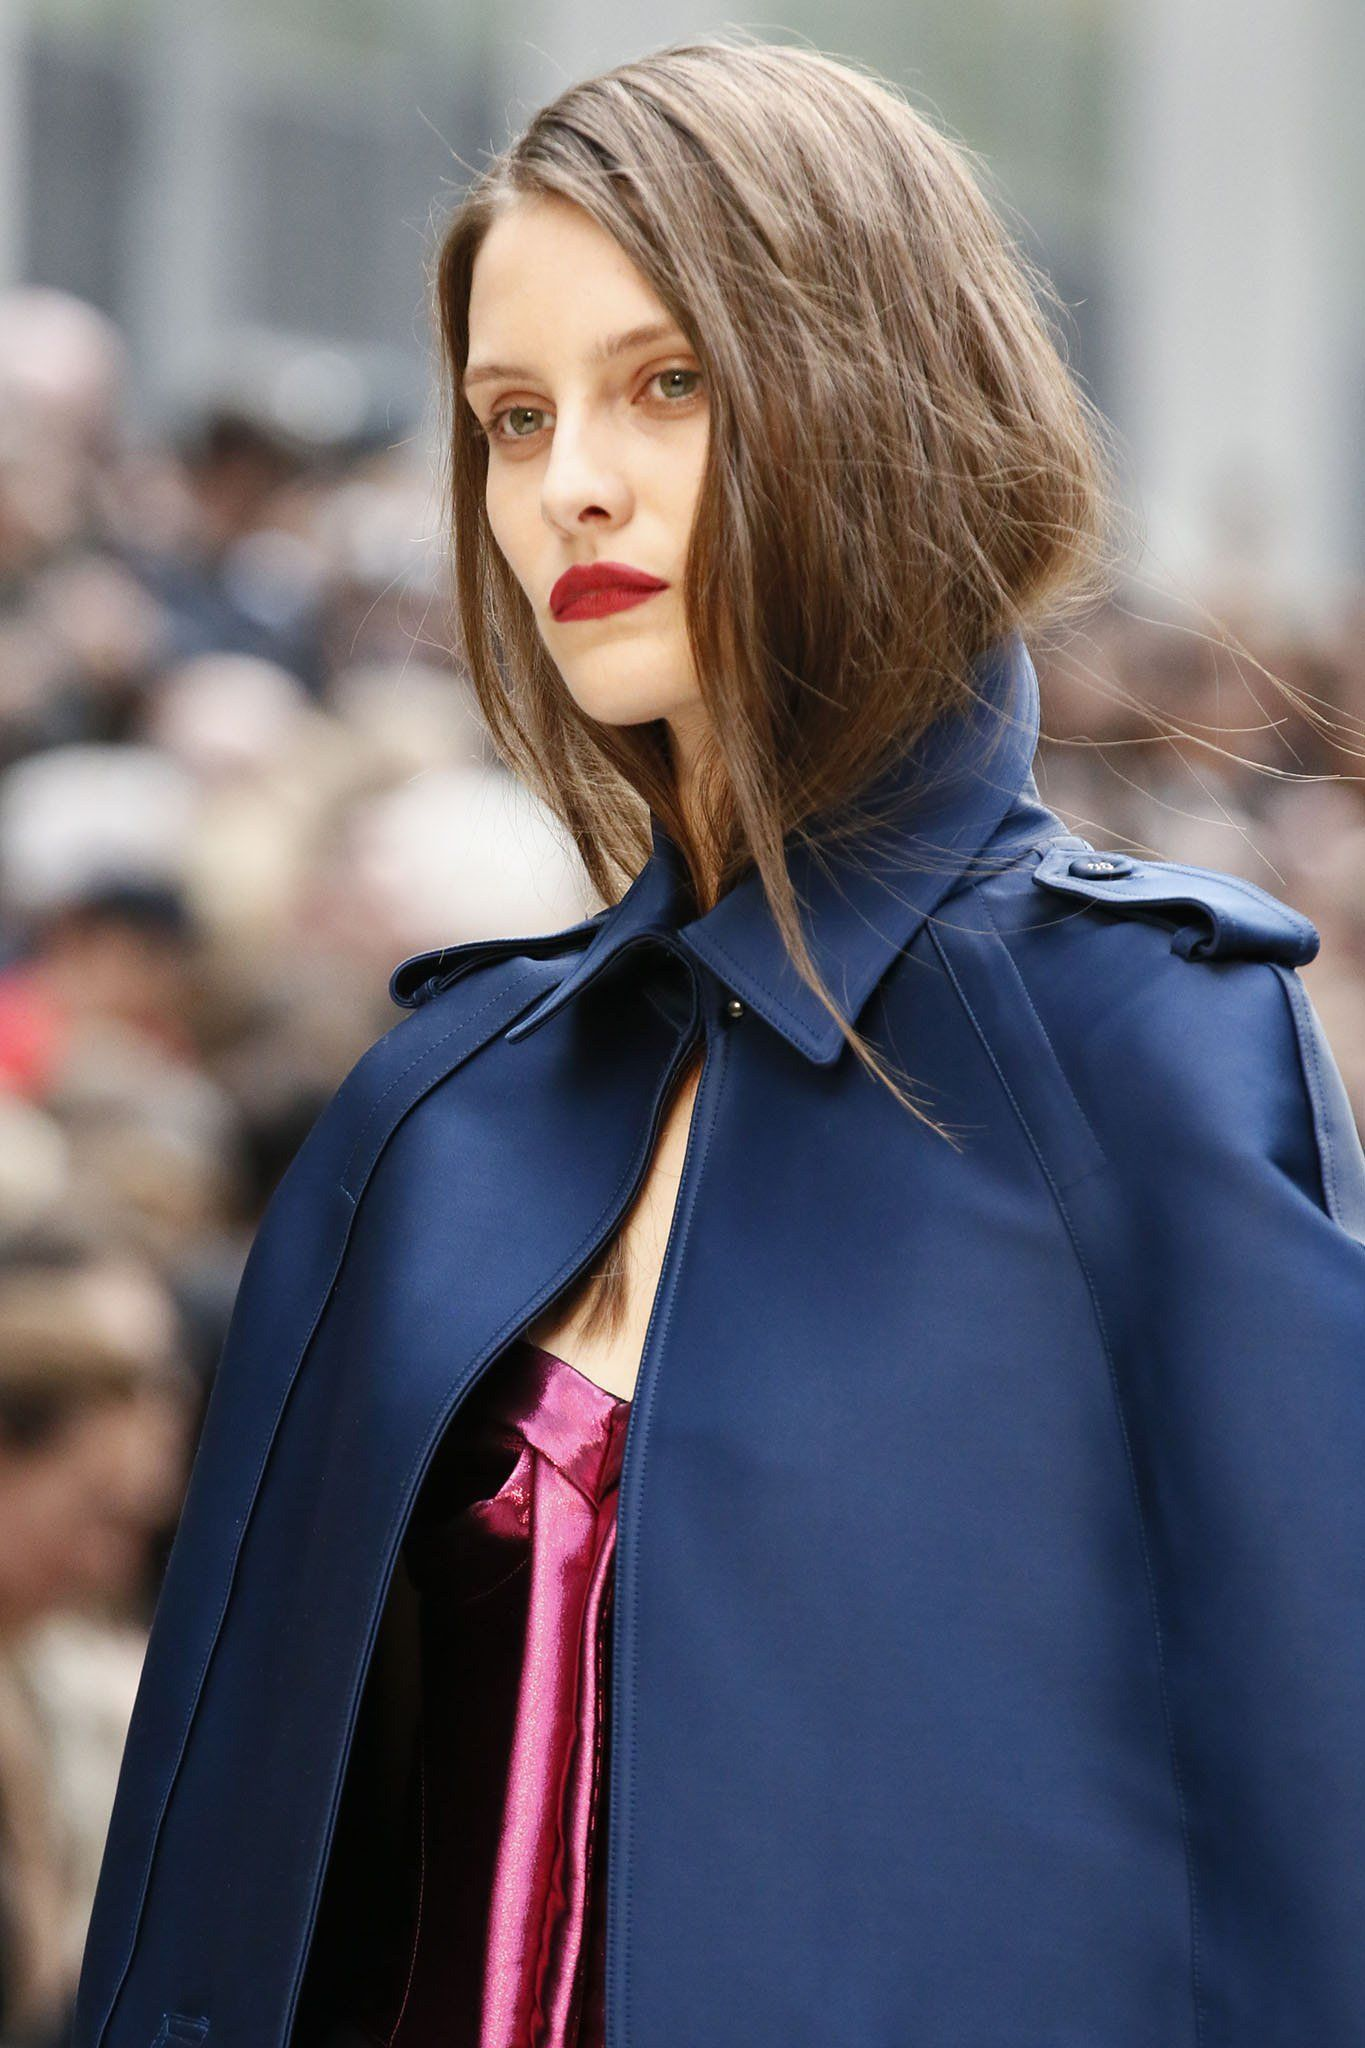 02af3909a1ff Windy Day Hair Solutions - A number of clever wind-blown hair ideas have  sprung forth on the Burberry runway